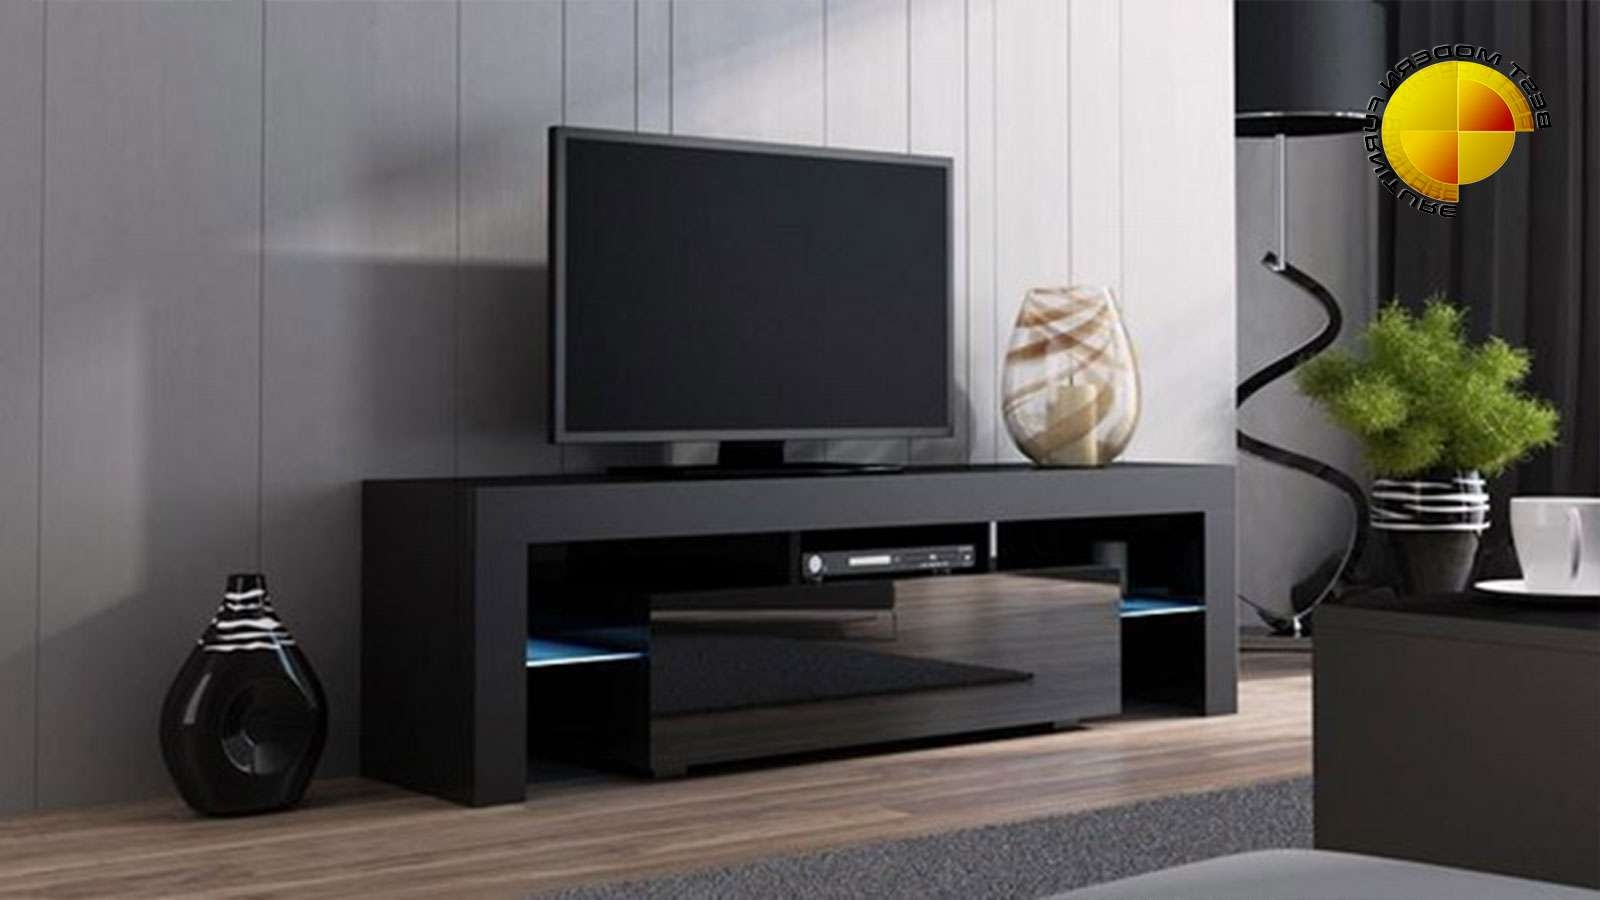 Modern Tv Stand 160cm High Gloss Cabinet Rgb Led Lights Black Unit Intended For Modern Tv Stands (View 9 of 15)